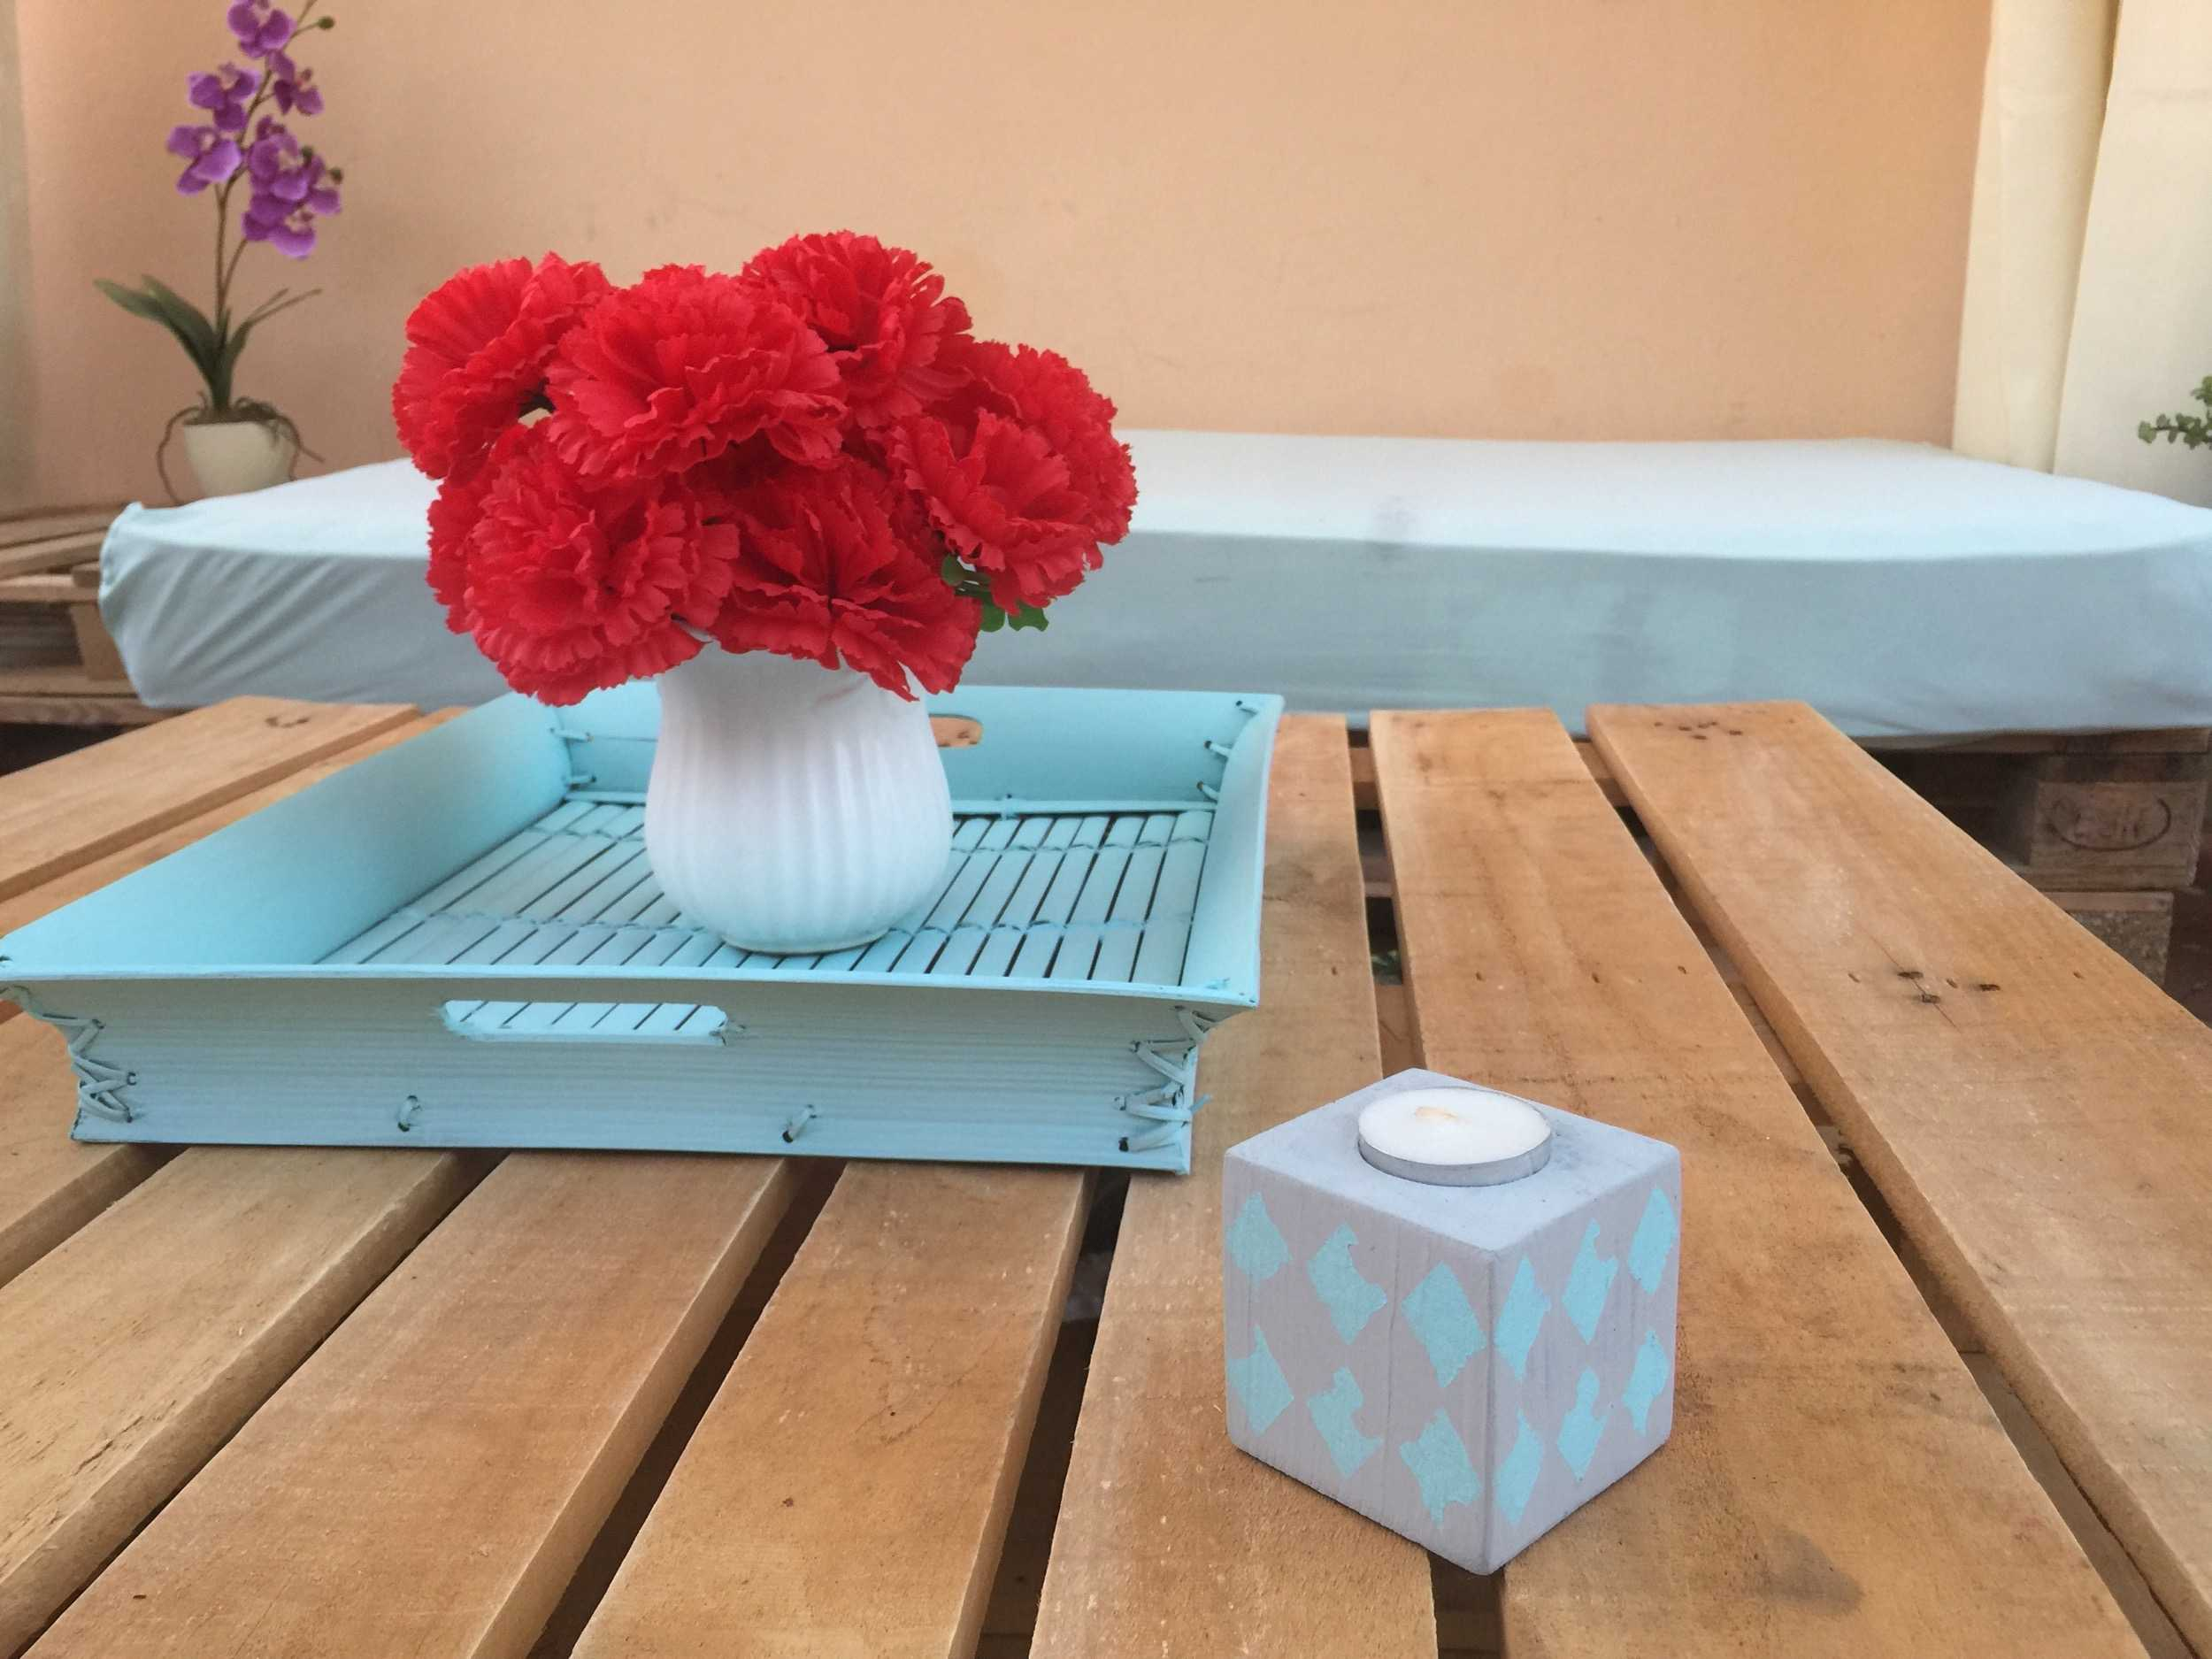 How to make a pretty coastal style tray upcycling and painting an old one · My Sweet Things